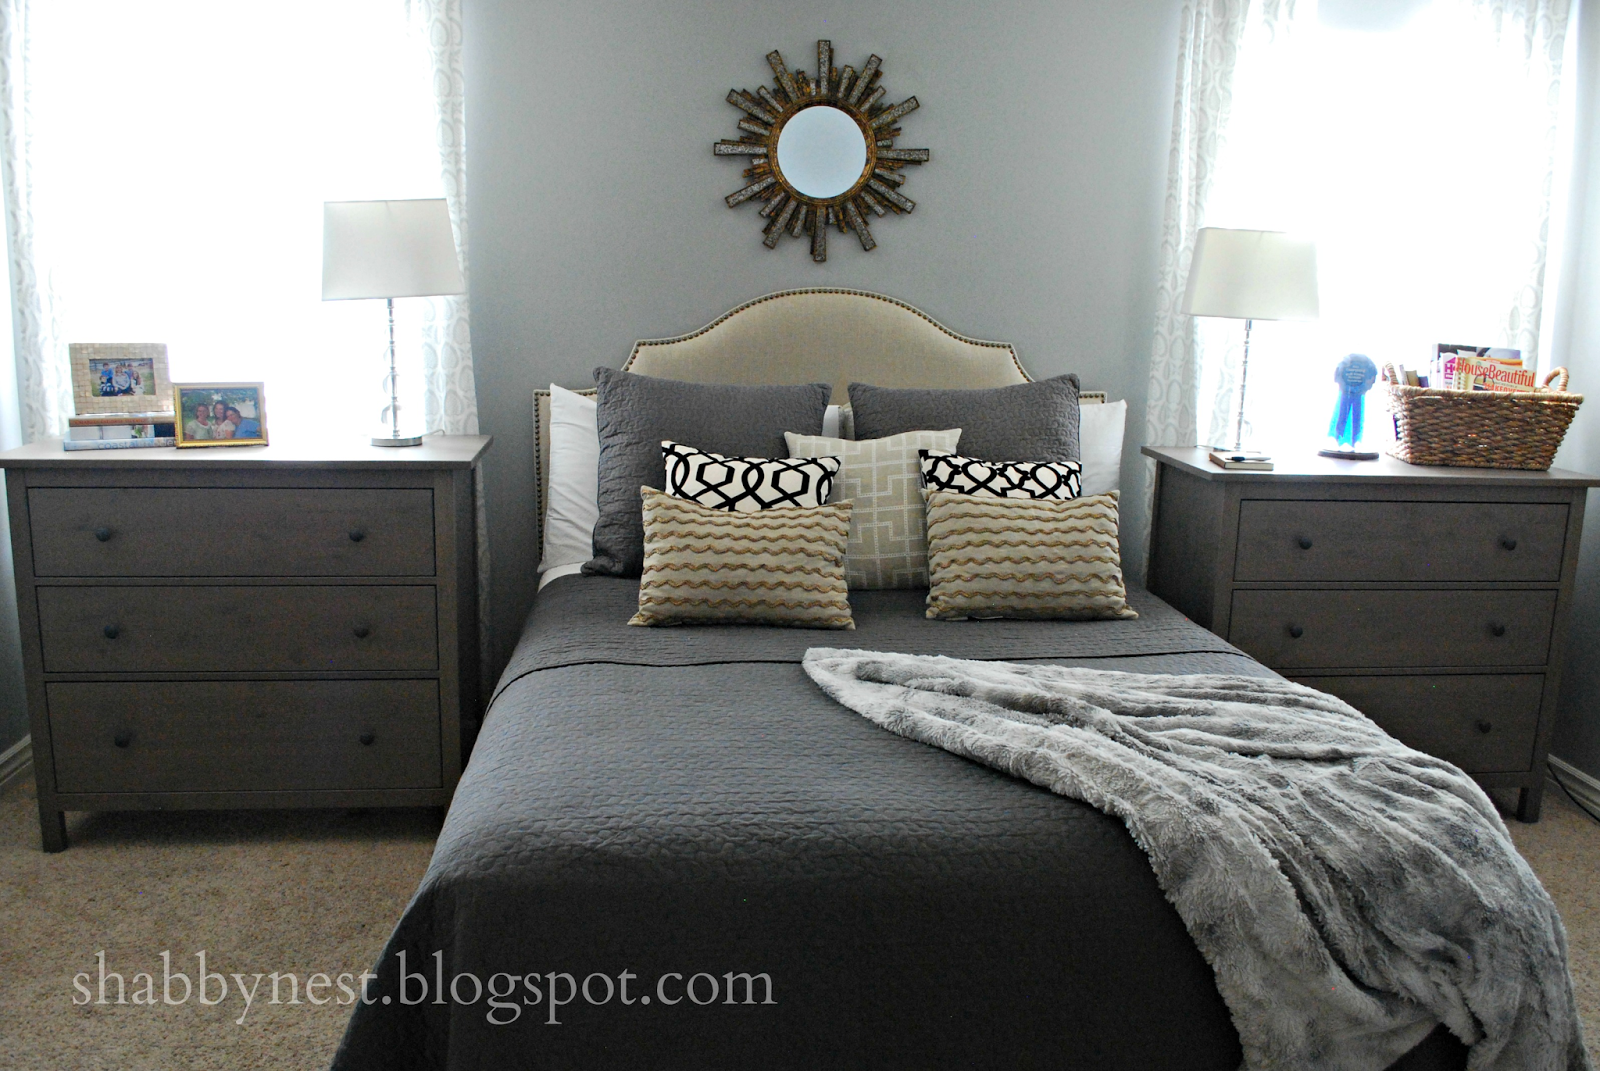 The Shabby Nest Using Dressers As Nightstands Dresser As